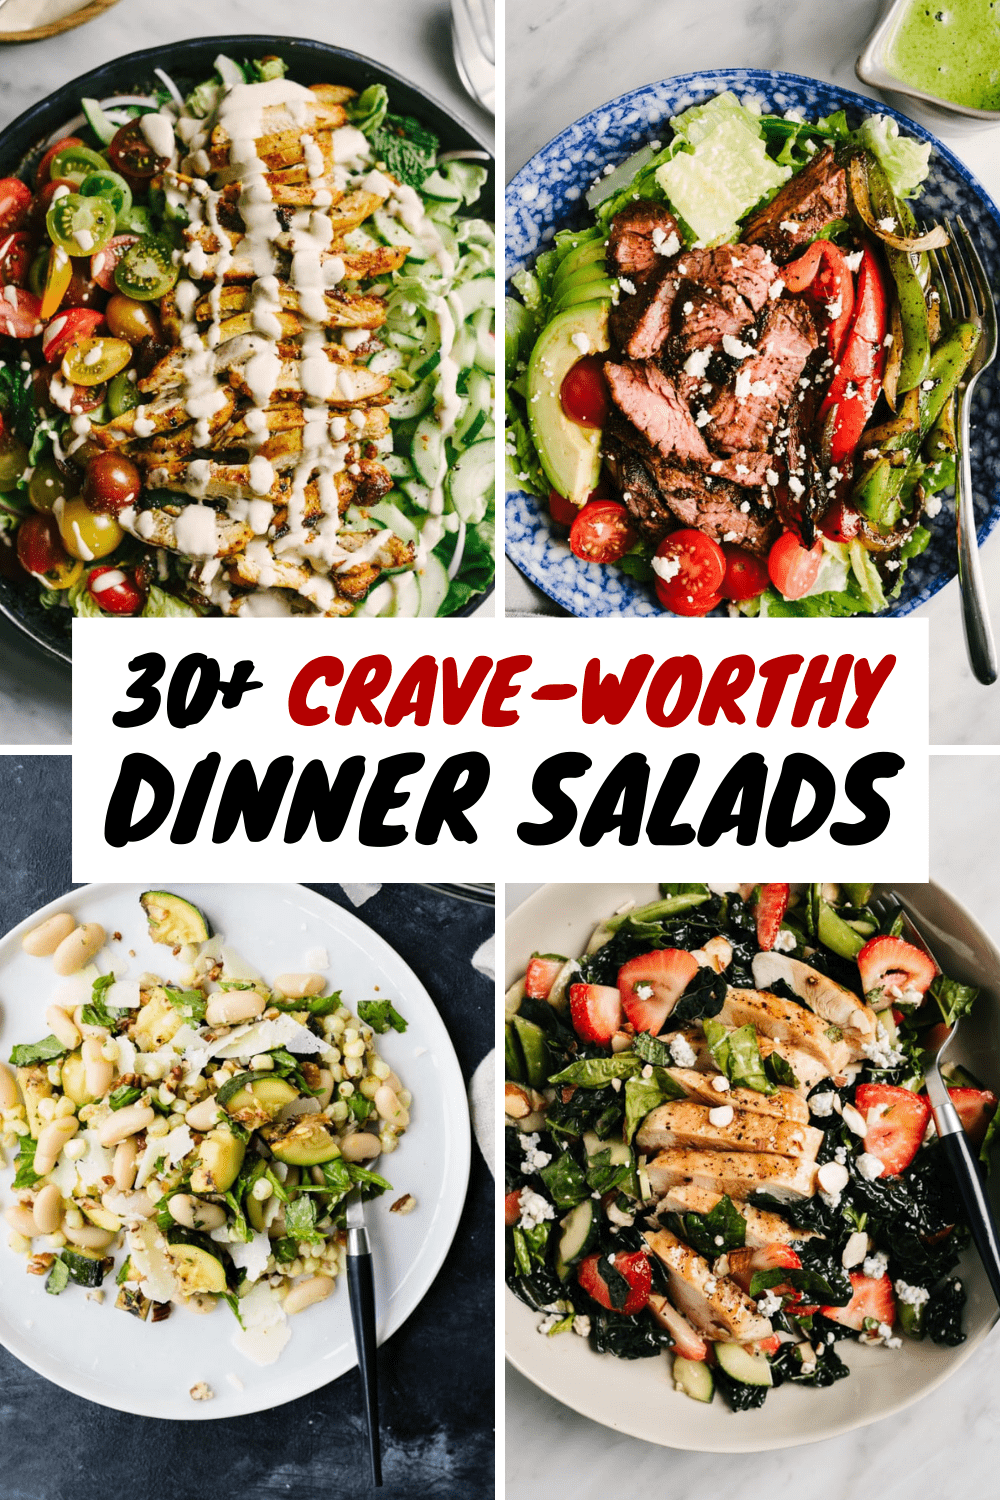 A collage of healthy dinner salad recipes.